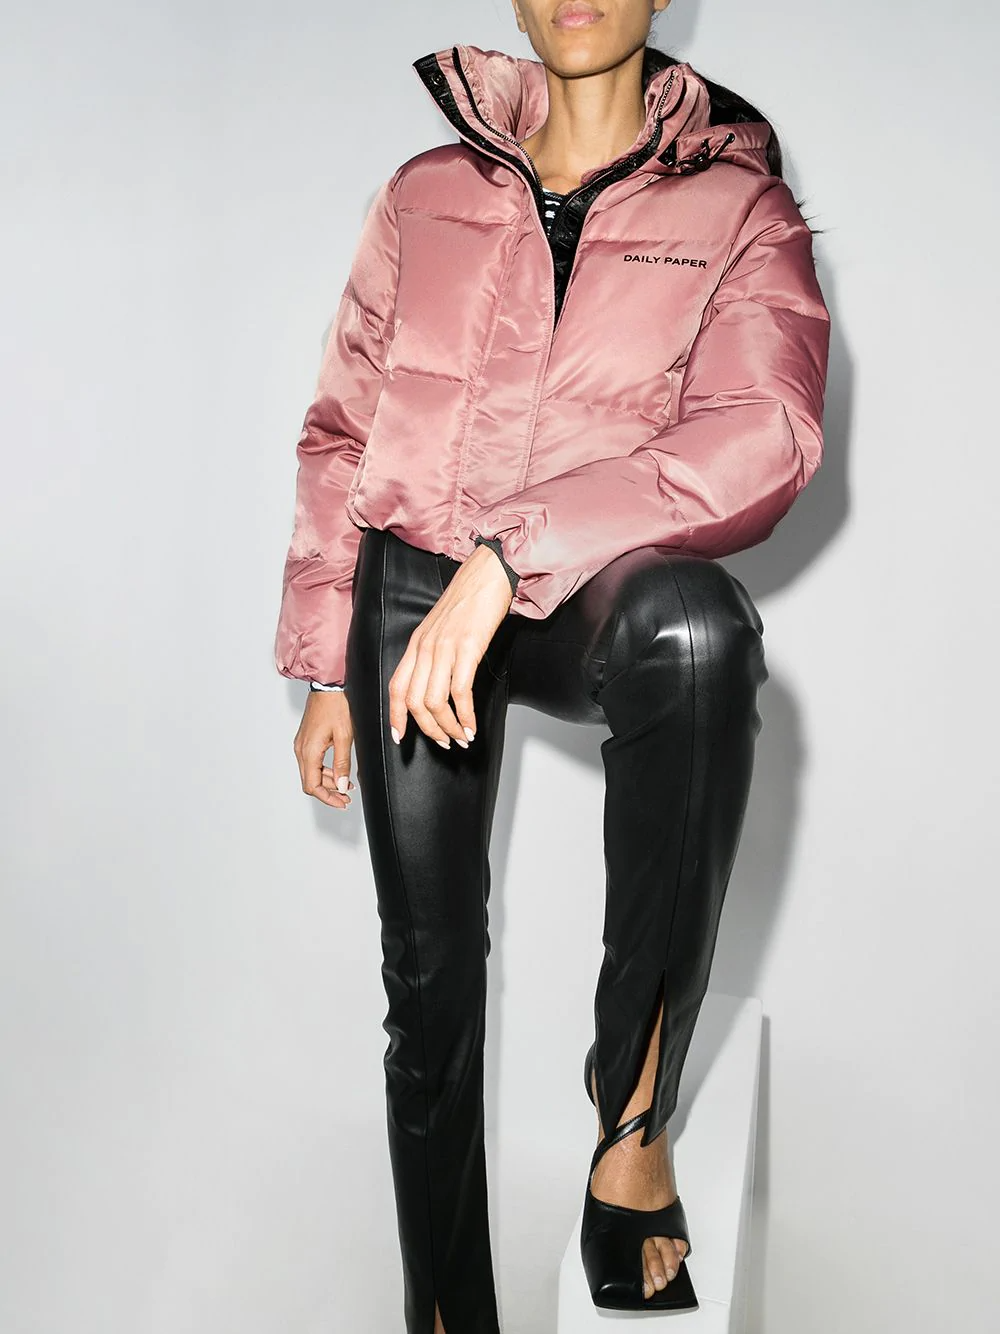 Daily Paper Cropped Puffer Jacket Farfetch Cropped Puffer Jacket Jackets Puffer Jackets [ 1334 x 1000 Pixel ]